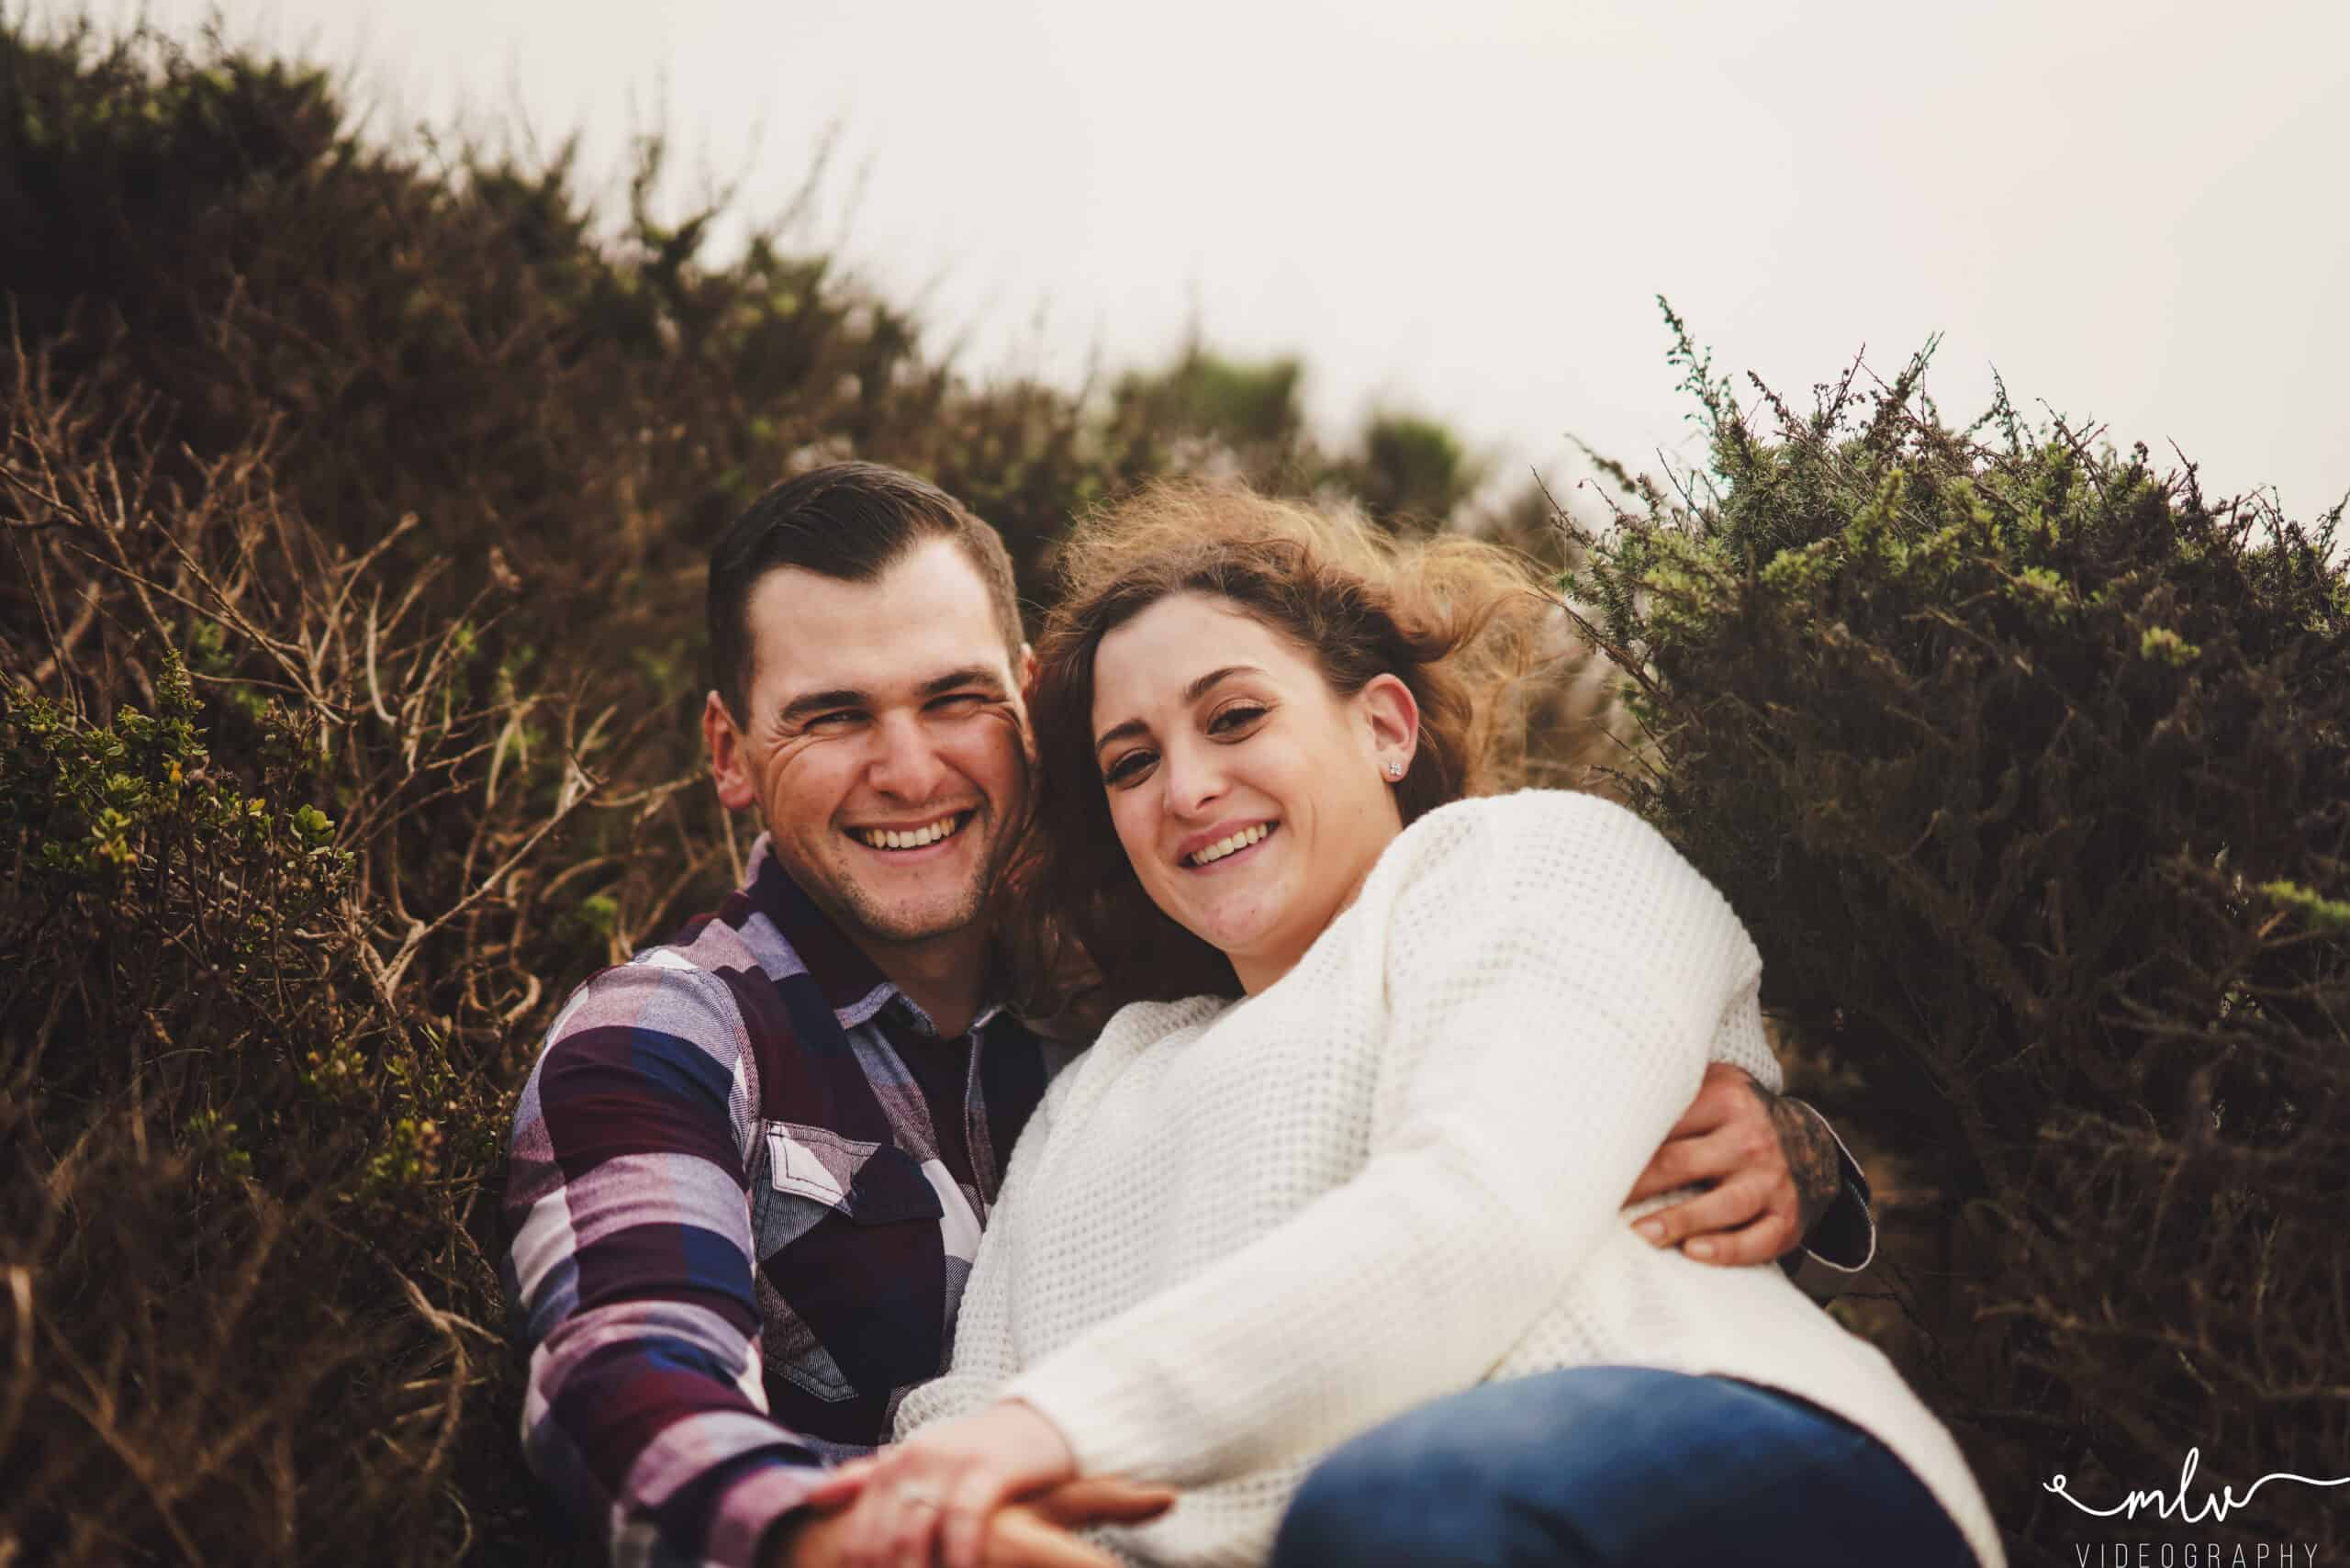 Engagement photography in Half Moon Bay California